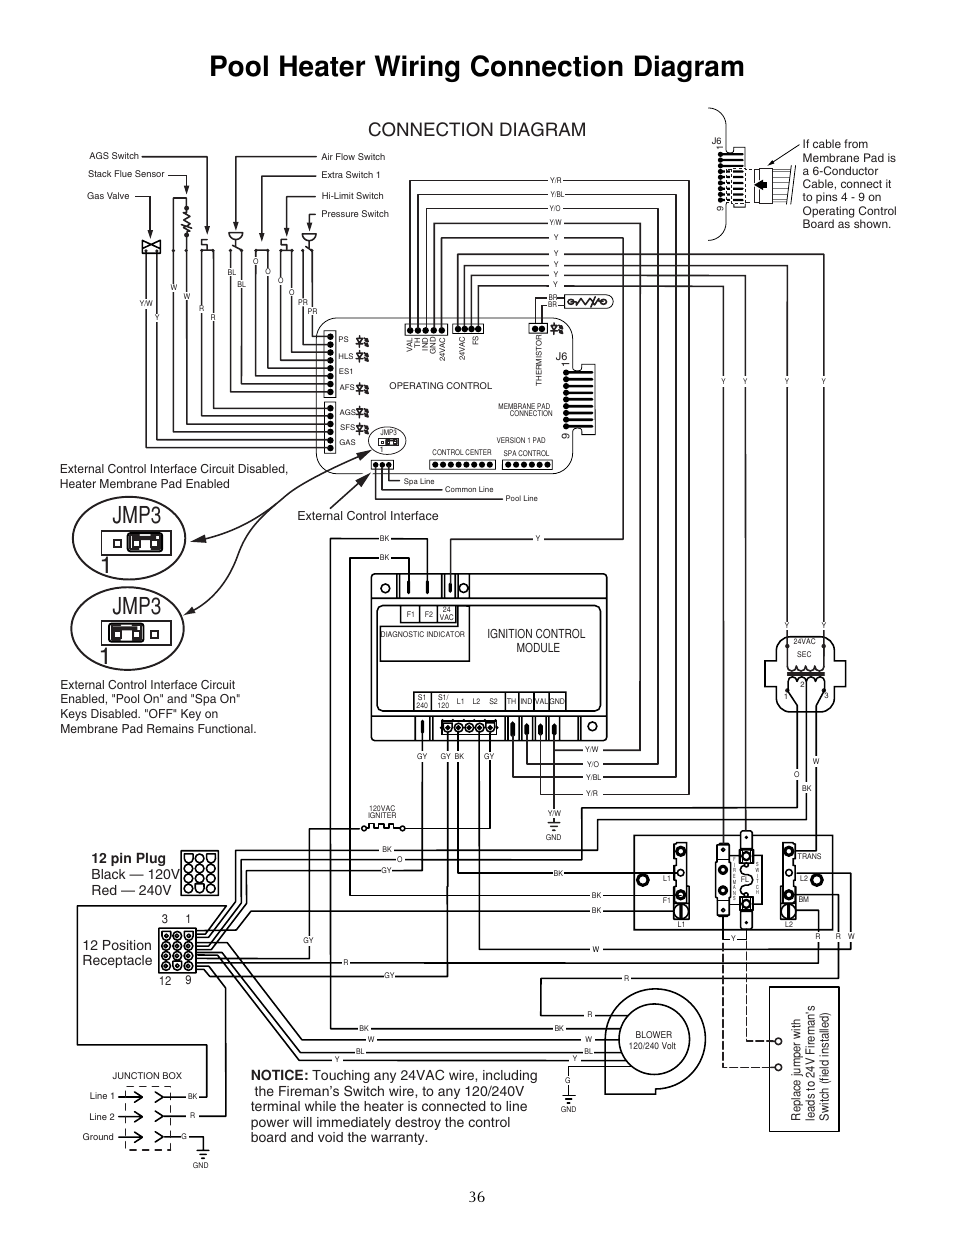 pool heater wiring connection diagram  jmp3 1 jmp3 1